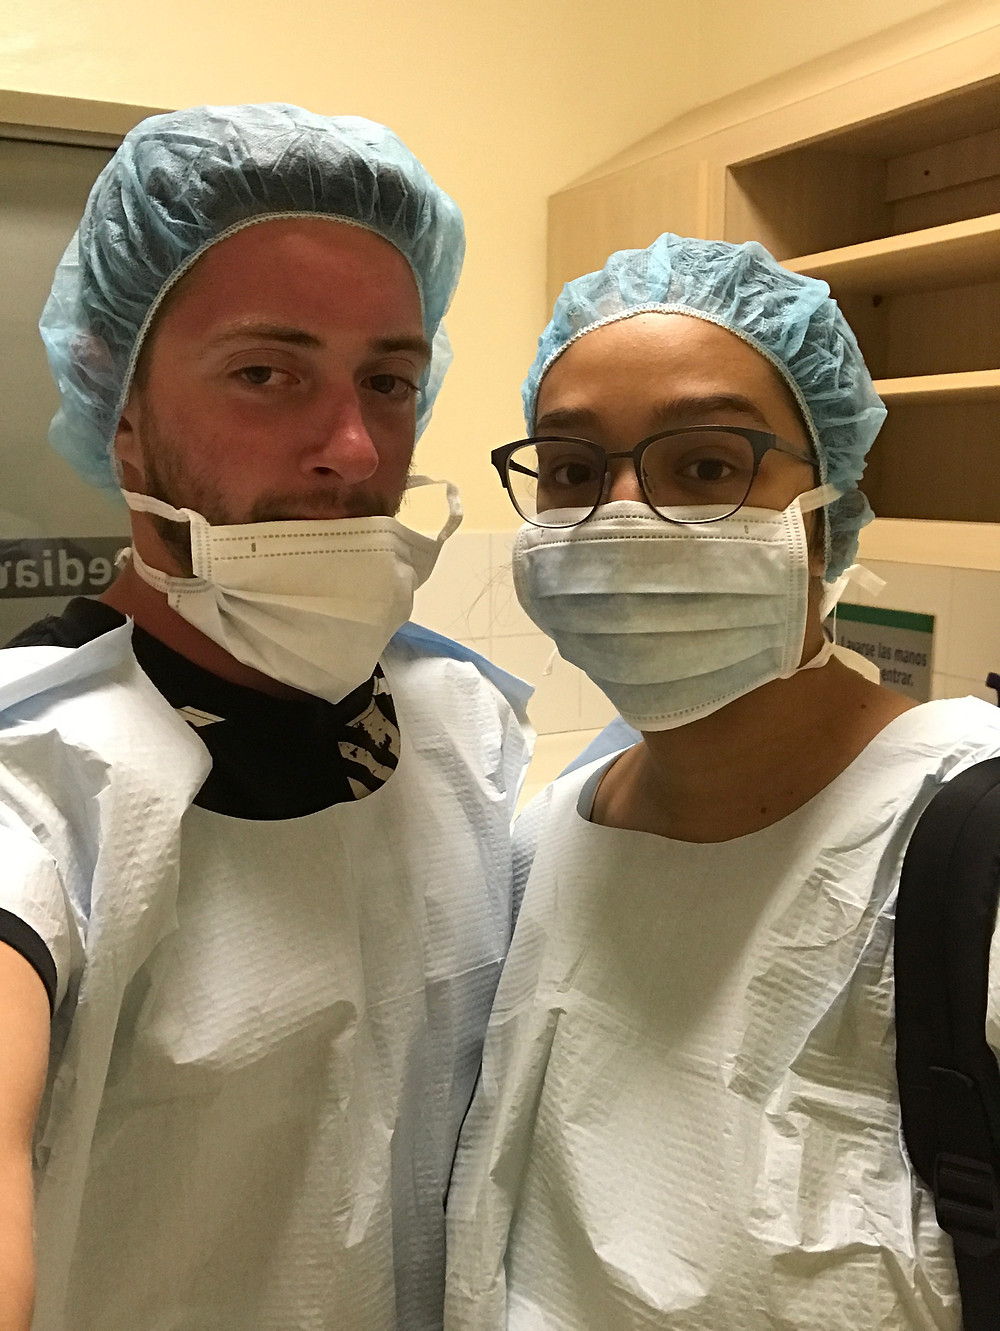 Cameron and Olivia wearing scrubs in the PICU antechamber